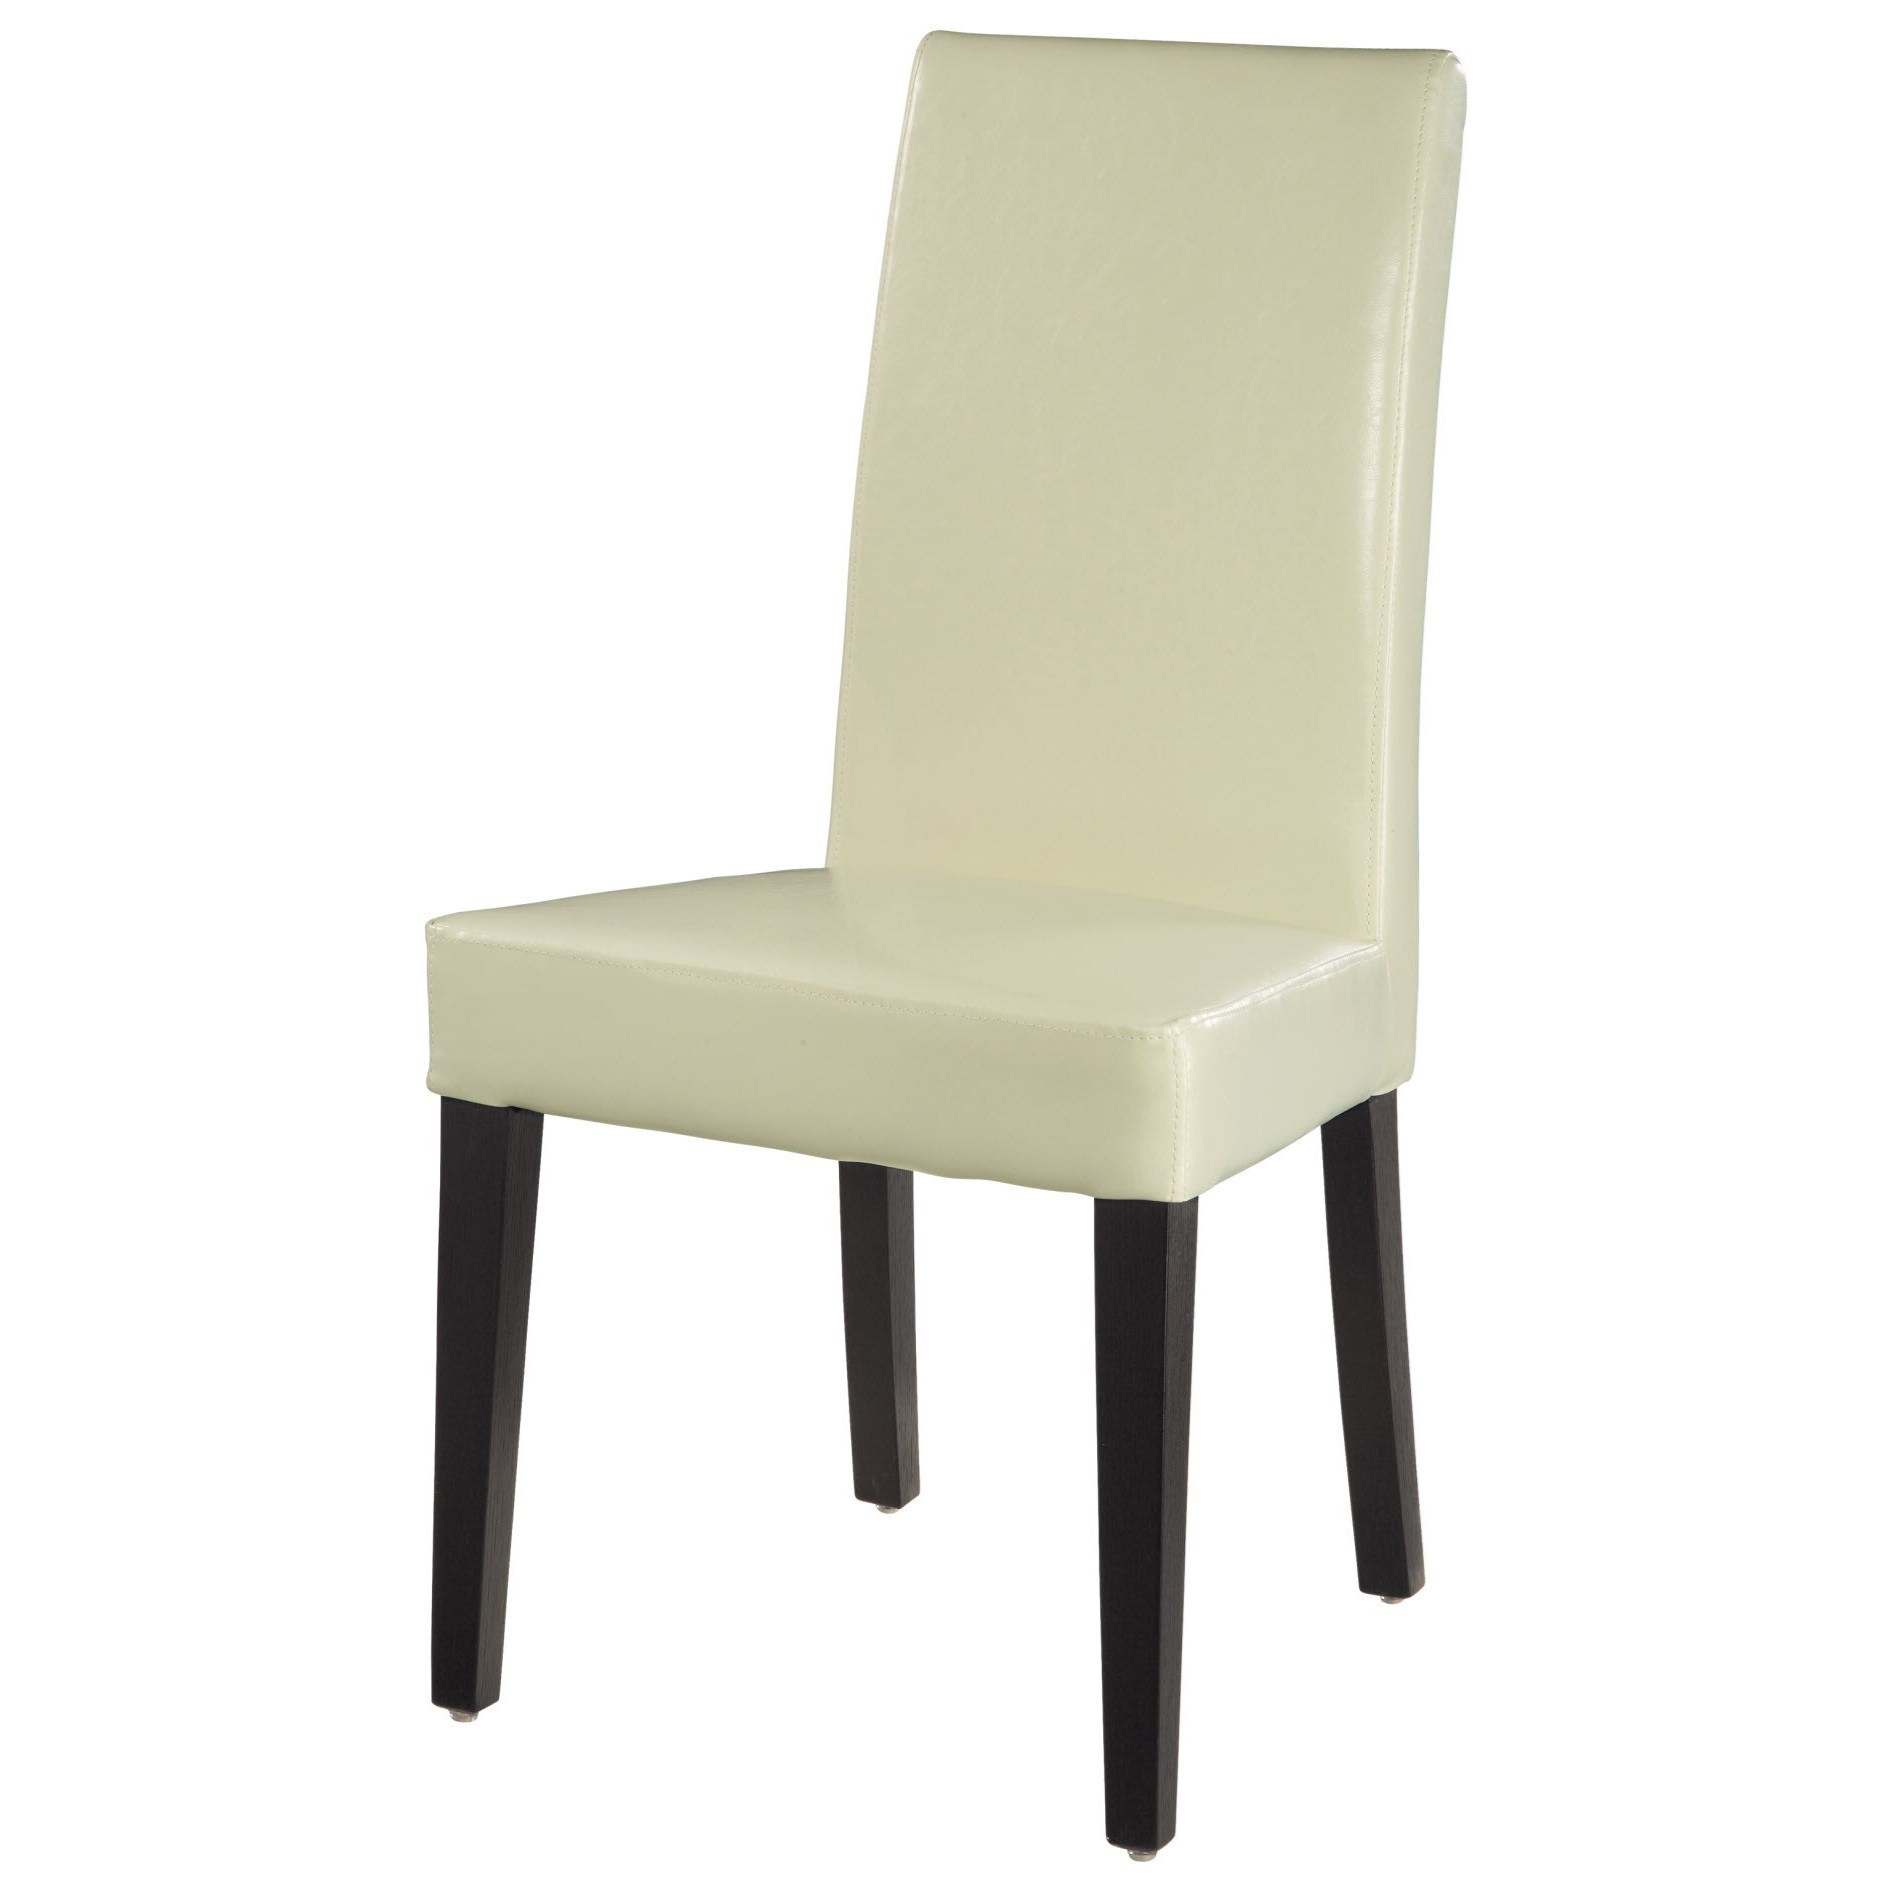 DG020 Dining Chair by Global Furniture at Dream Home Interiors